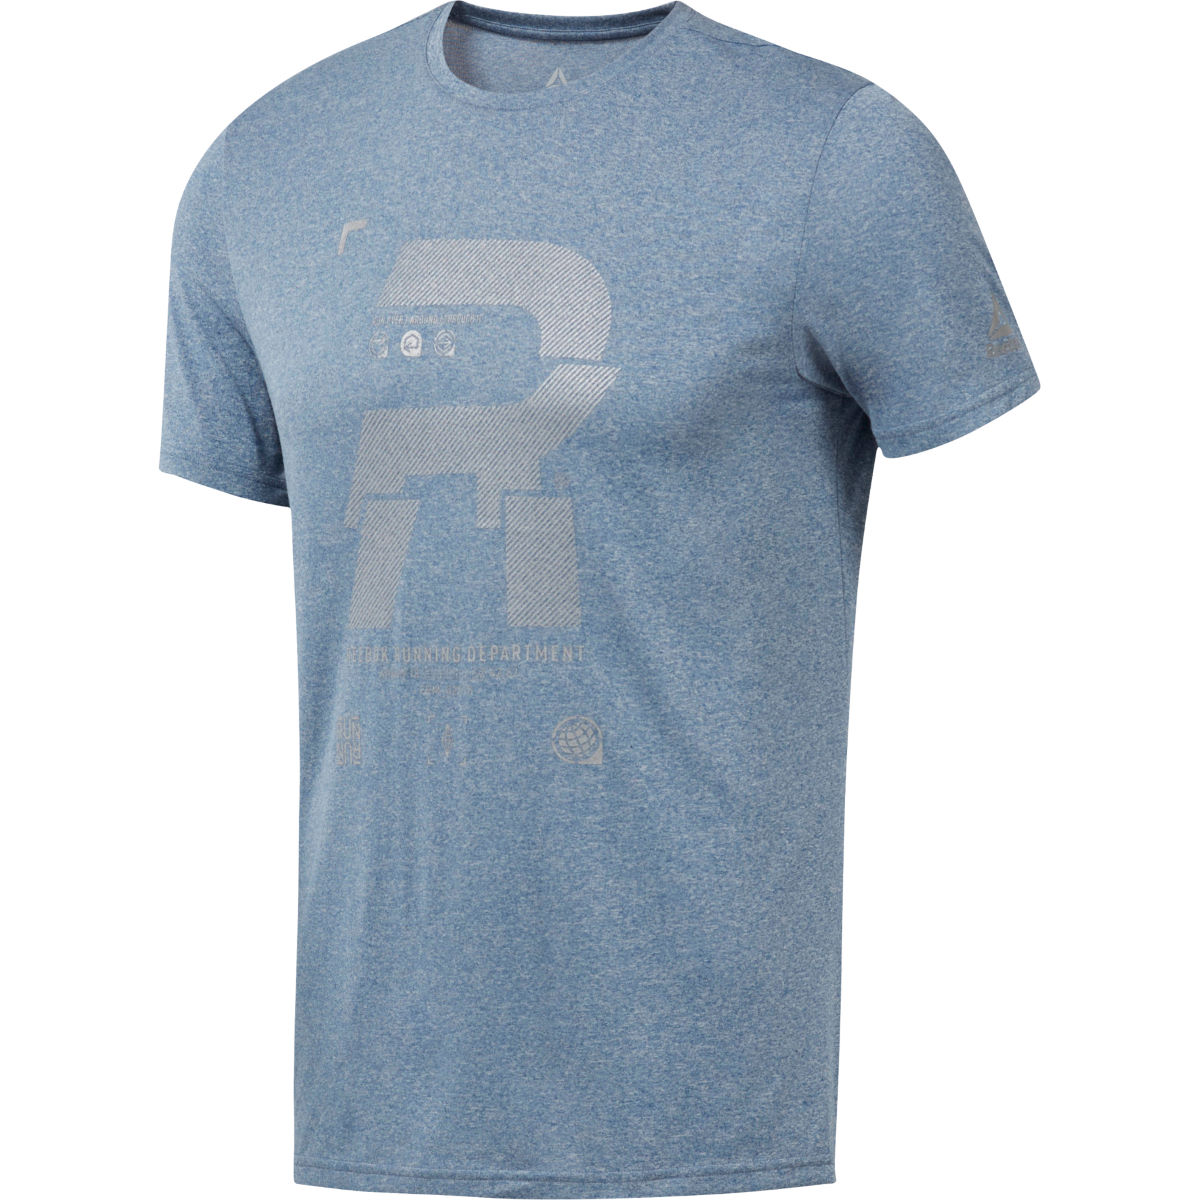 Reebok Reebok Reflective Run Tee   Short Sleeve Running Tops